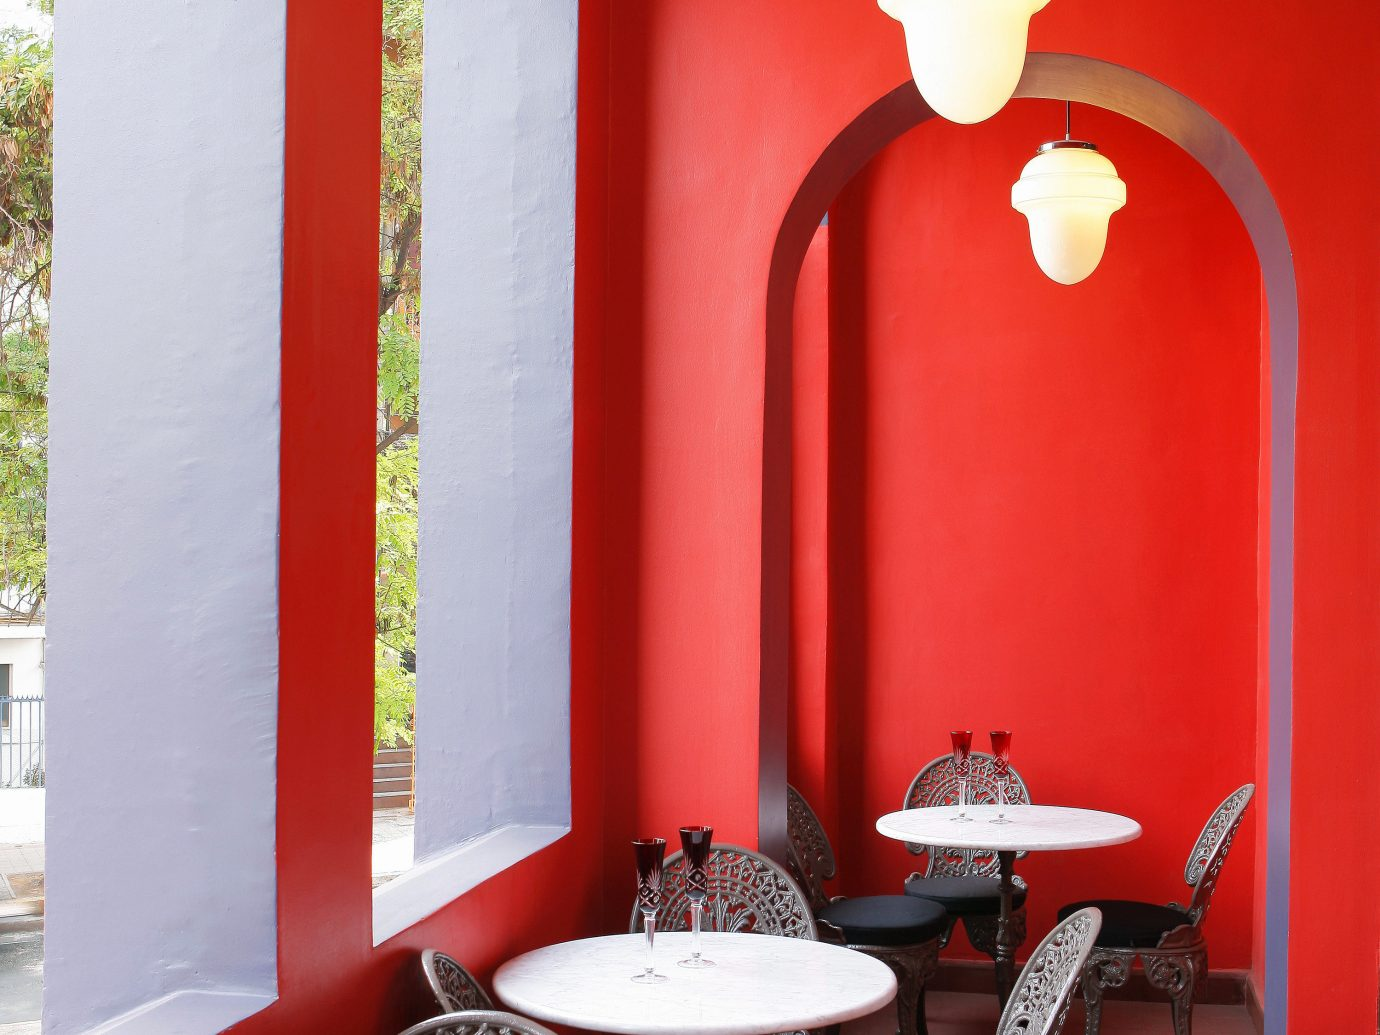 Boutique Design Dining Drink Eat Hotels Lounge Modern Romance red wall color room indoor living room dining room interior design lighting home